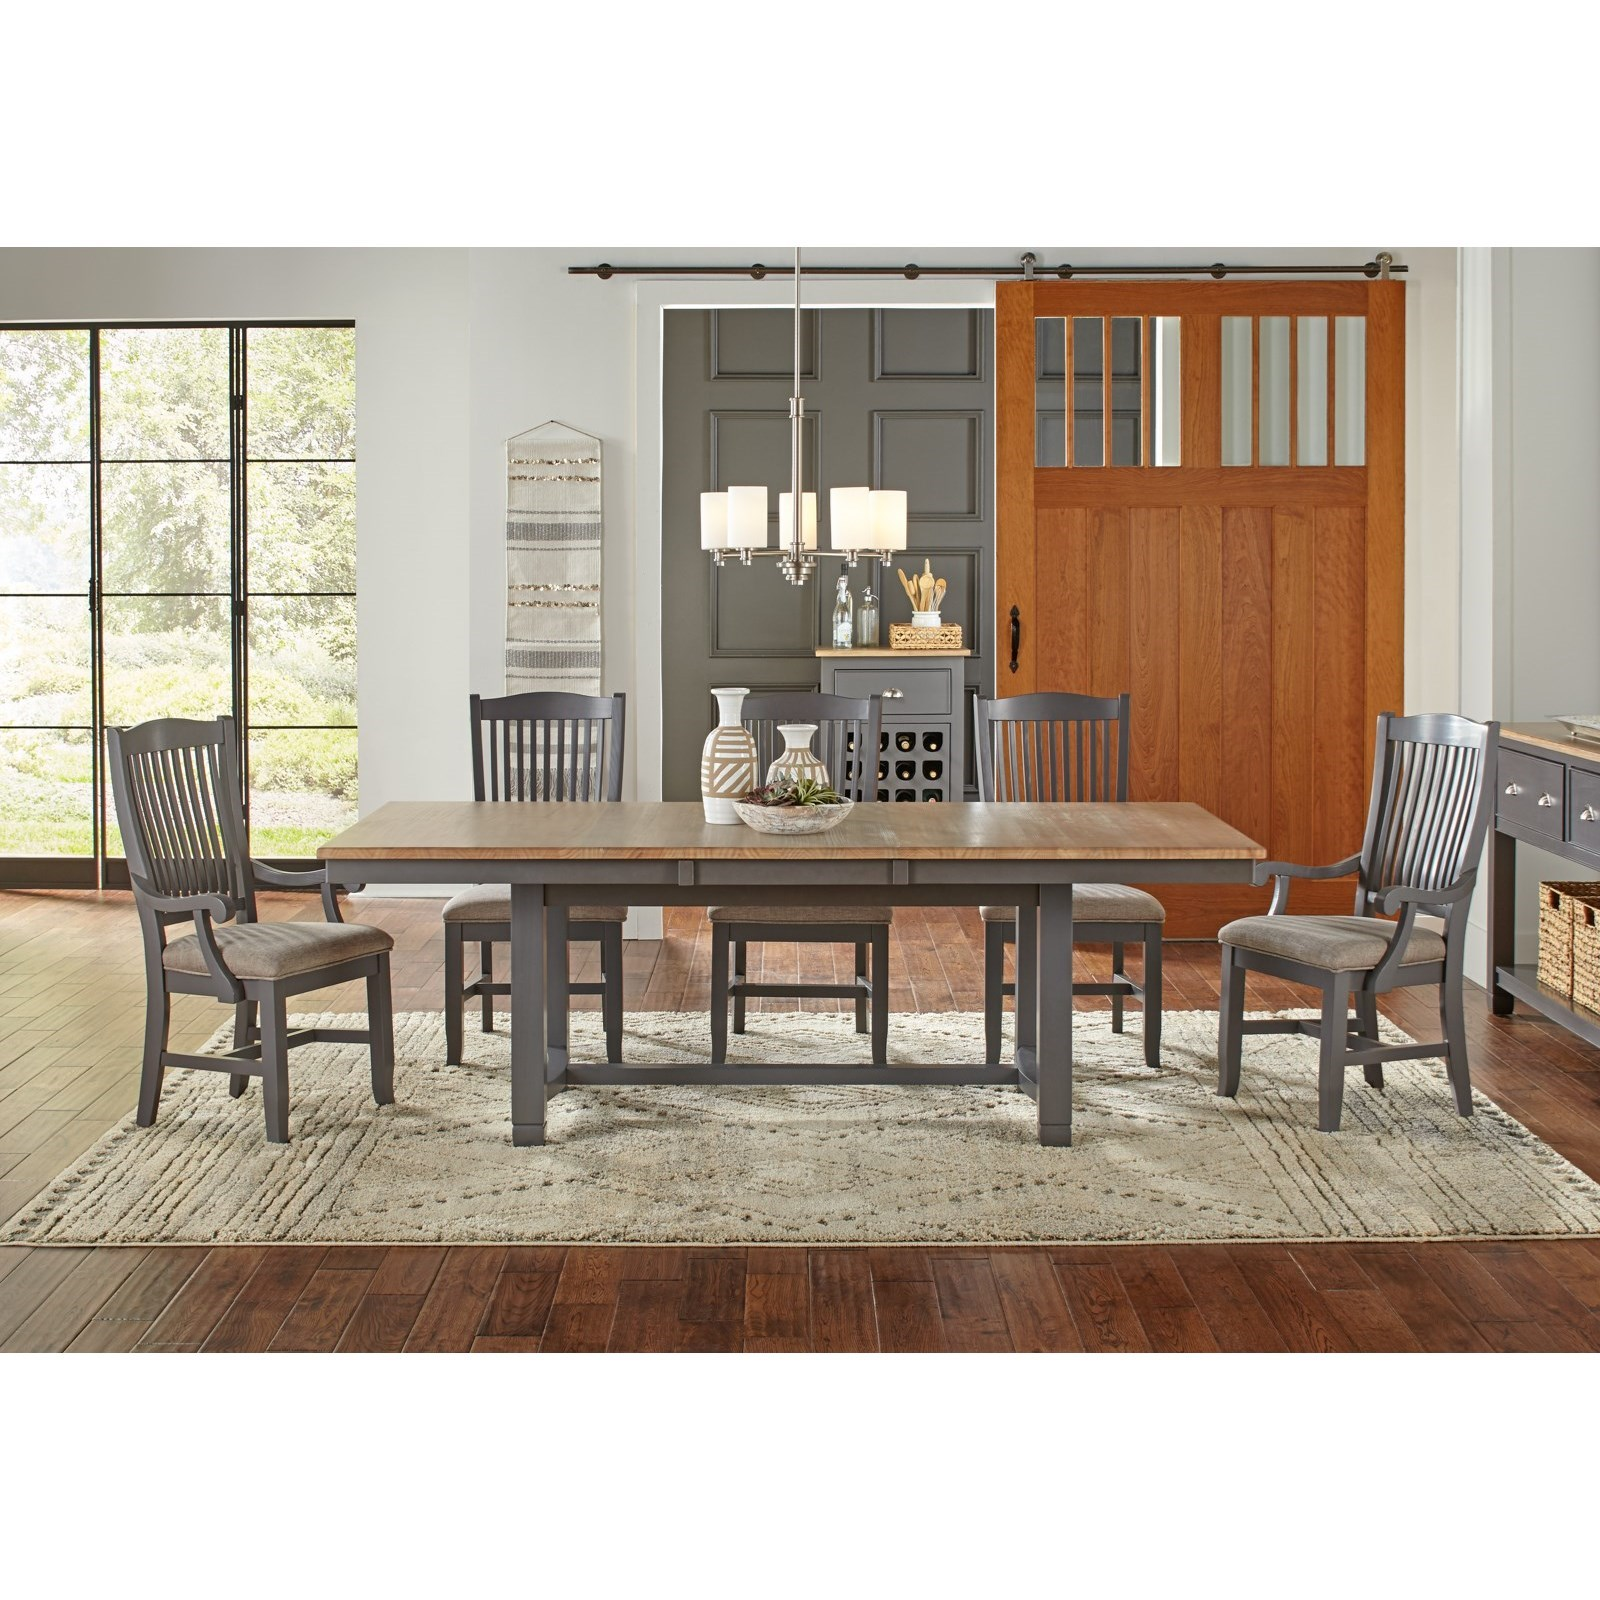 Port Townsend Trestle Table by AAmerica at Johnny Janosik